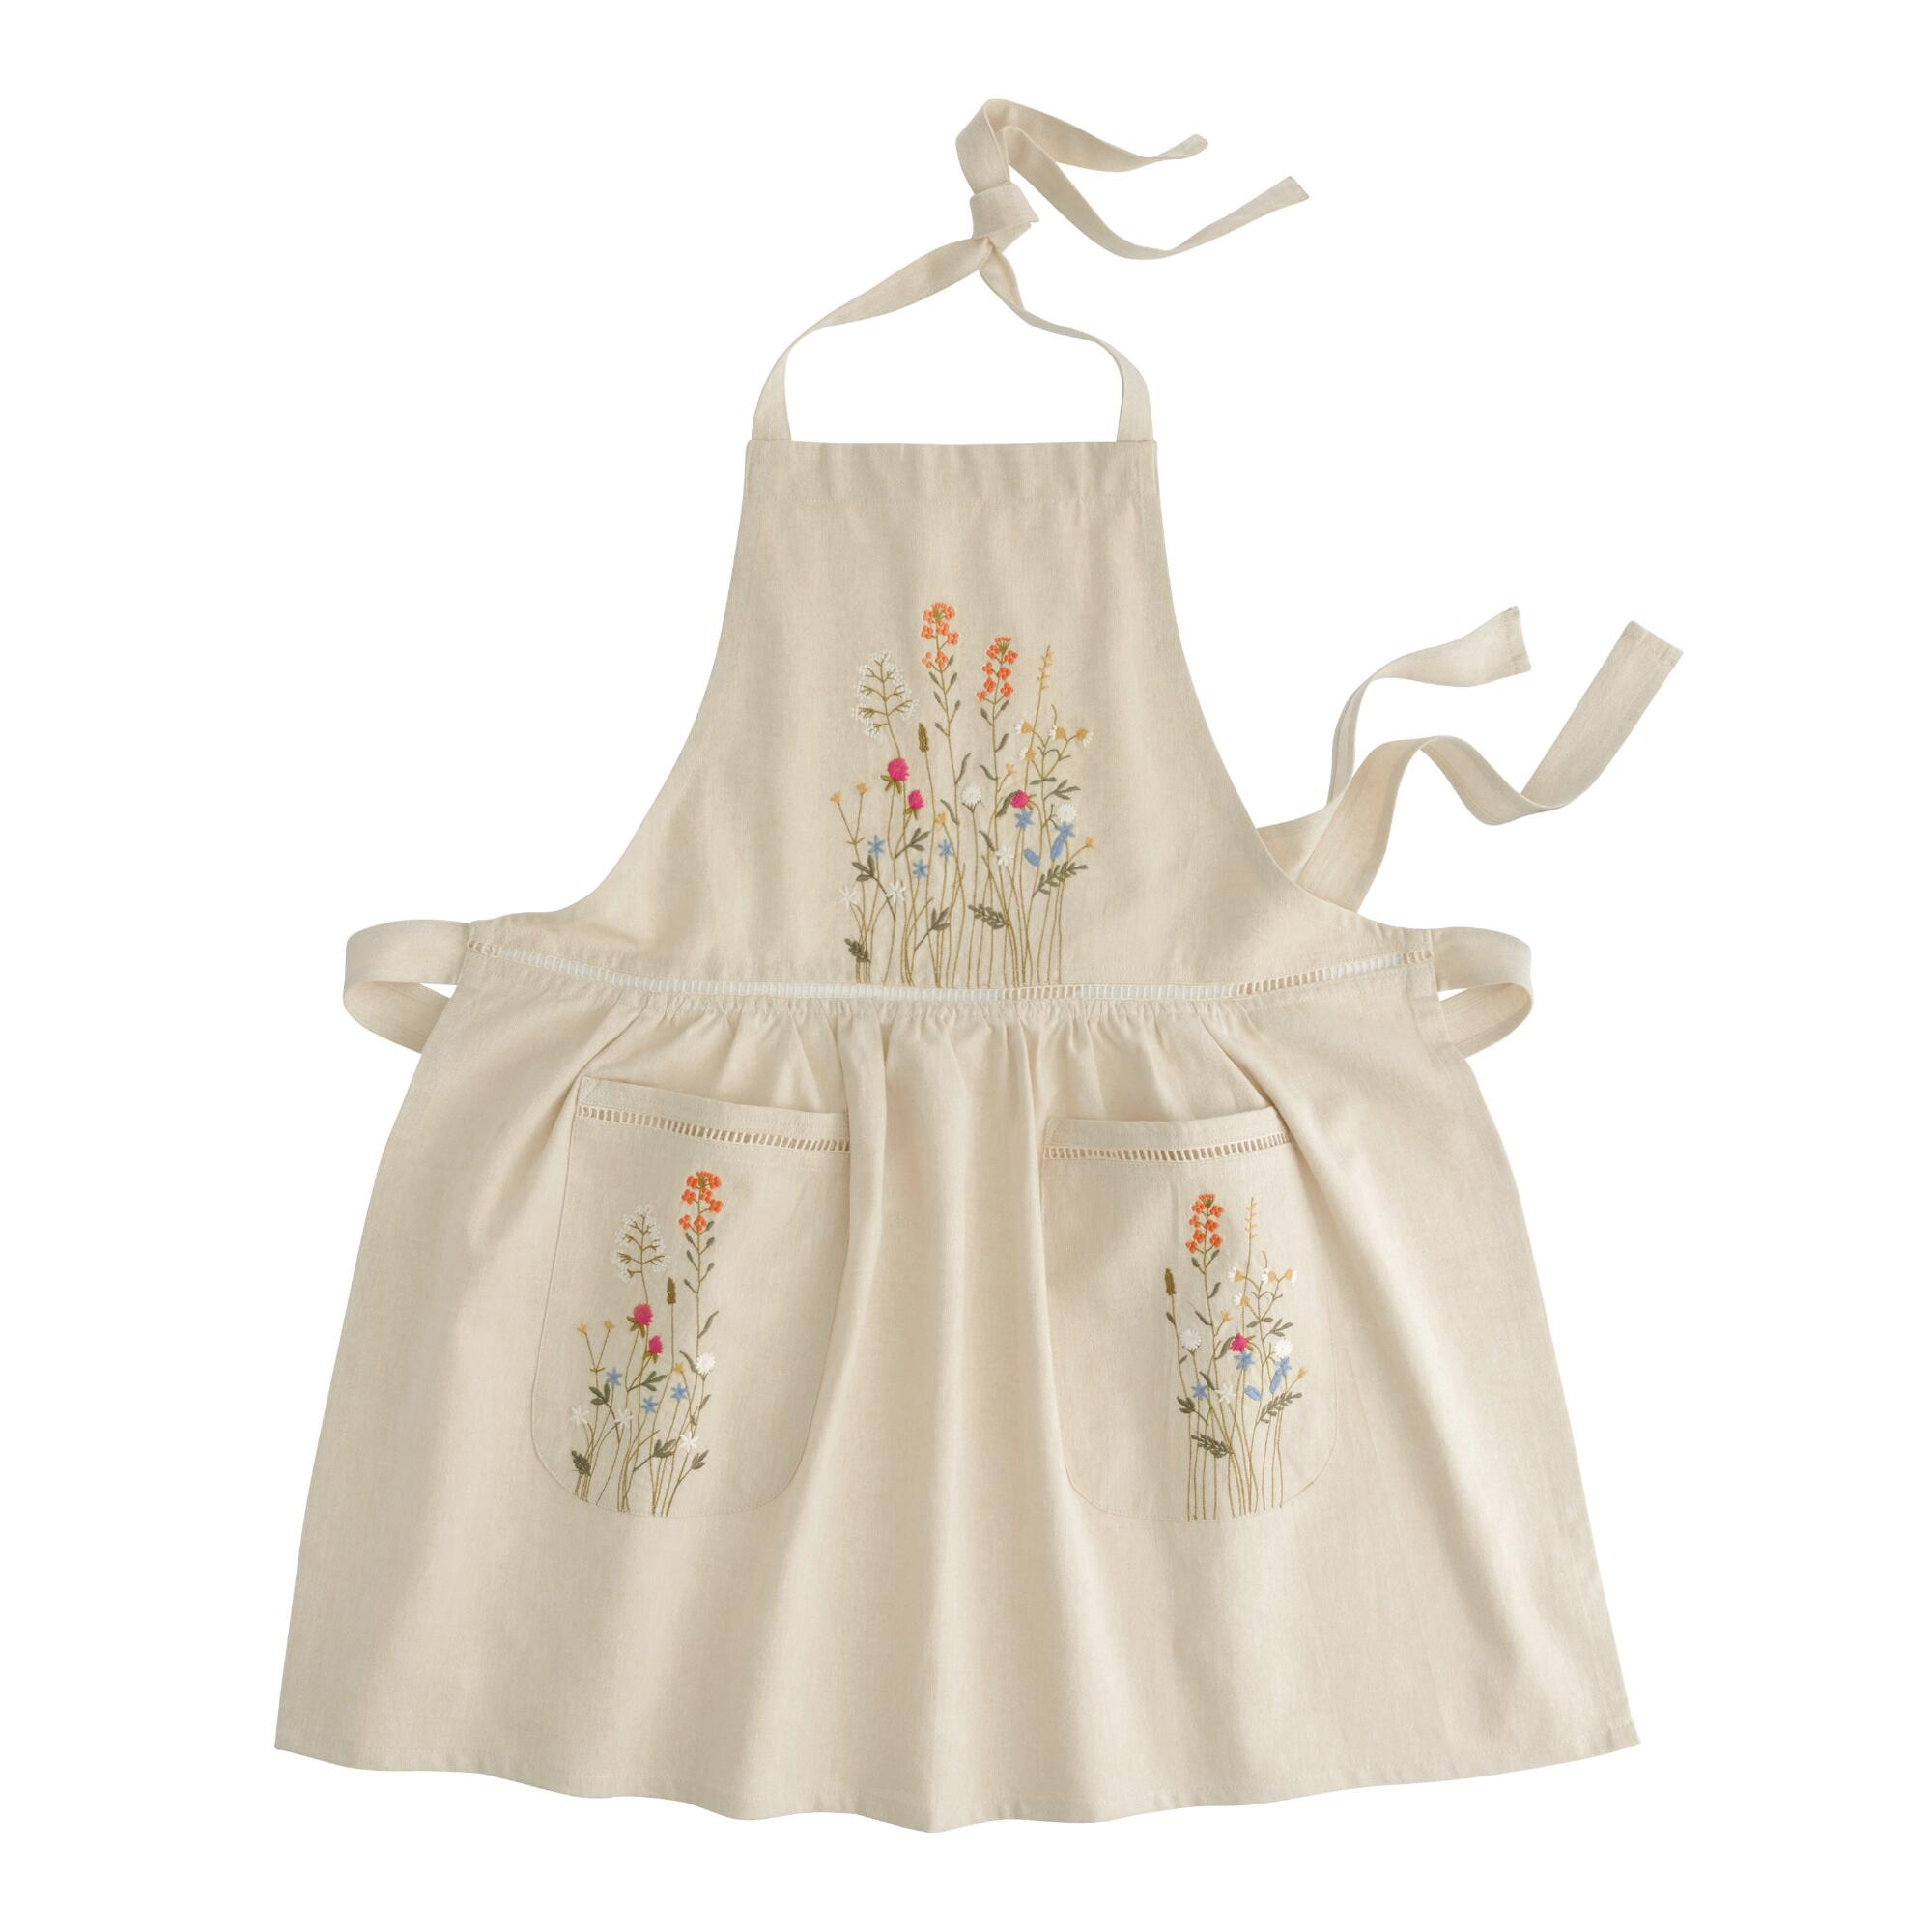 1950s House Dresses and Aprons History Natural Embroidered Floral Apron with Lace Trim by World Market $24.99 AT vintagedancer.com